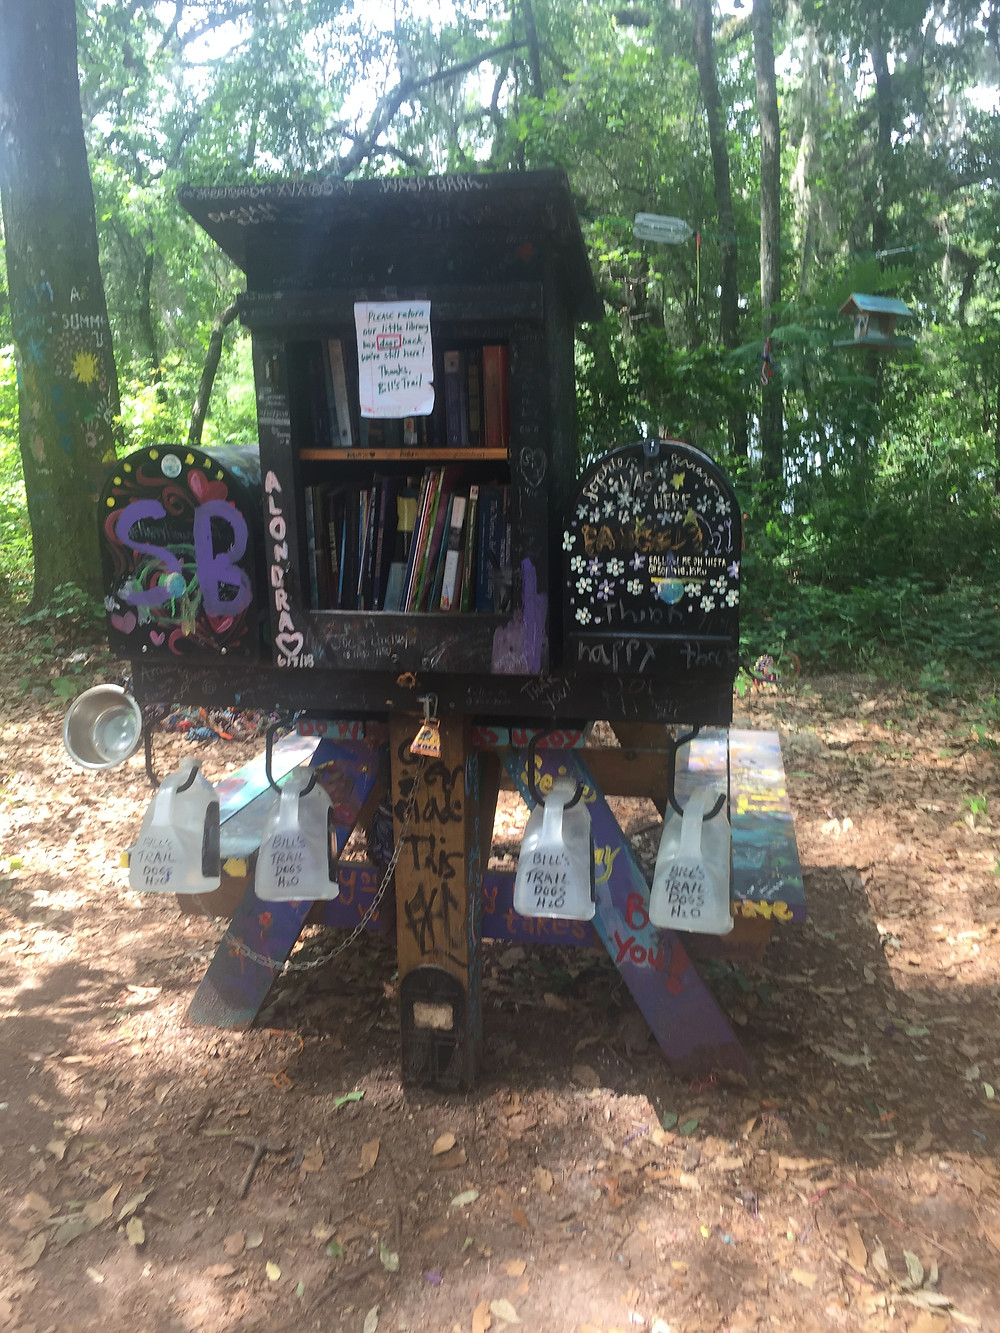 Community free mini library in the woods